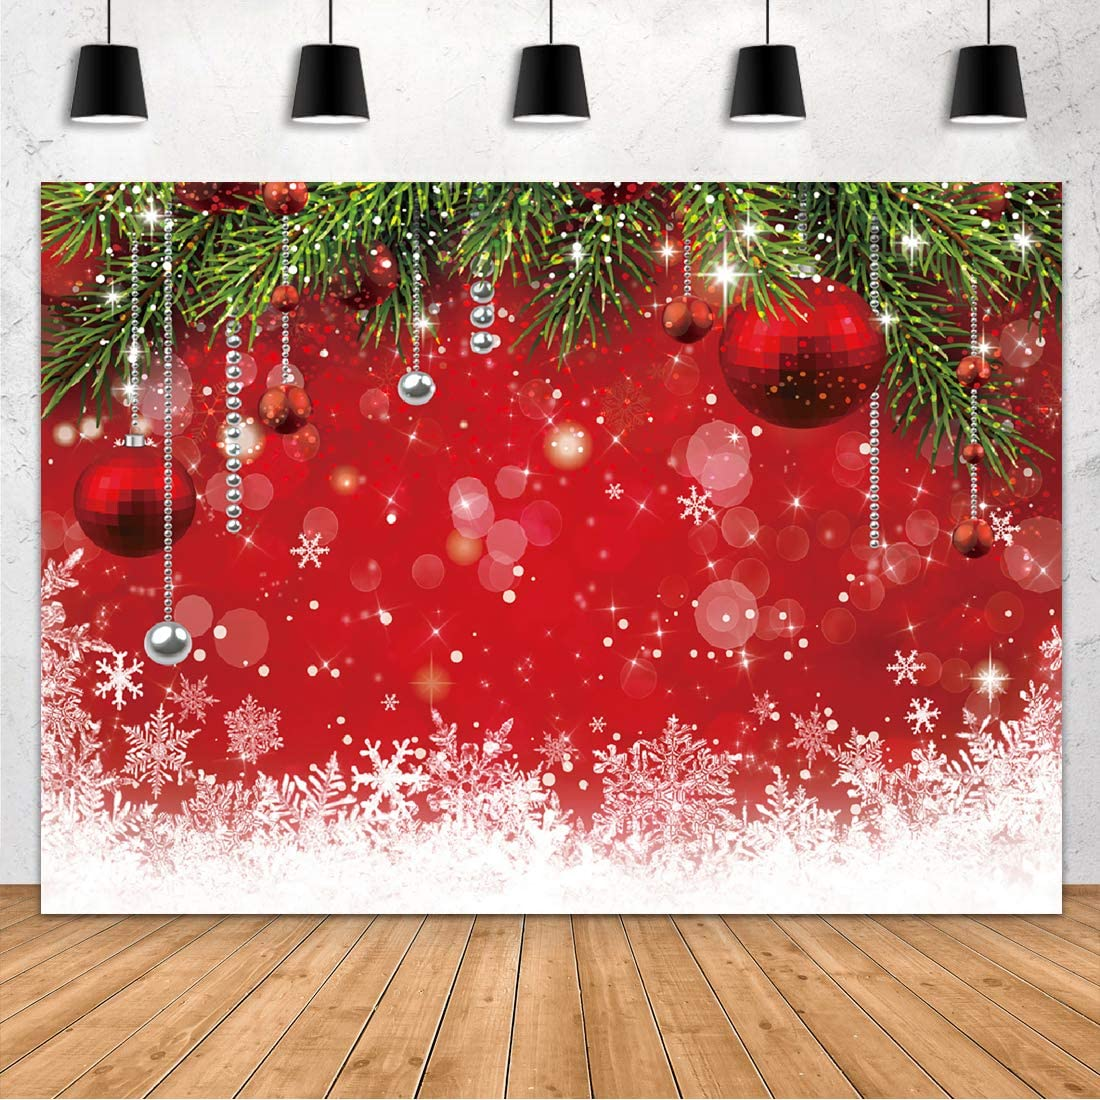 Aperturee 7x5ft Snowflake Christmas Backdrop Winter Family Party Birthday Glitter Bokeh Sparkle Red Merry Xmas Background Photography Baby Shower Portrait Decoration Photo Booth Studio Props Supplies